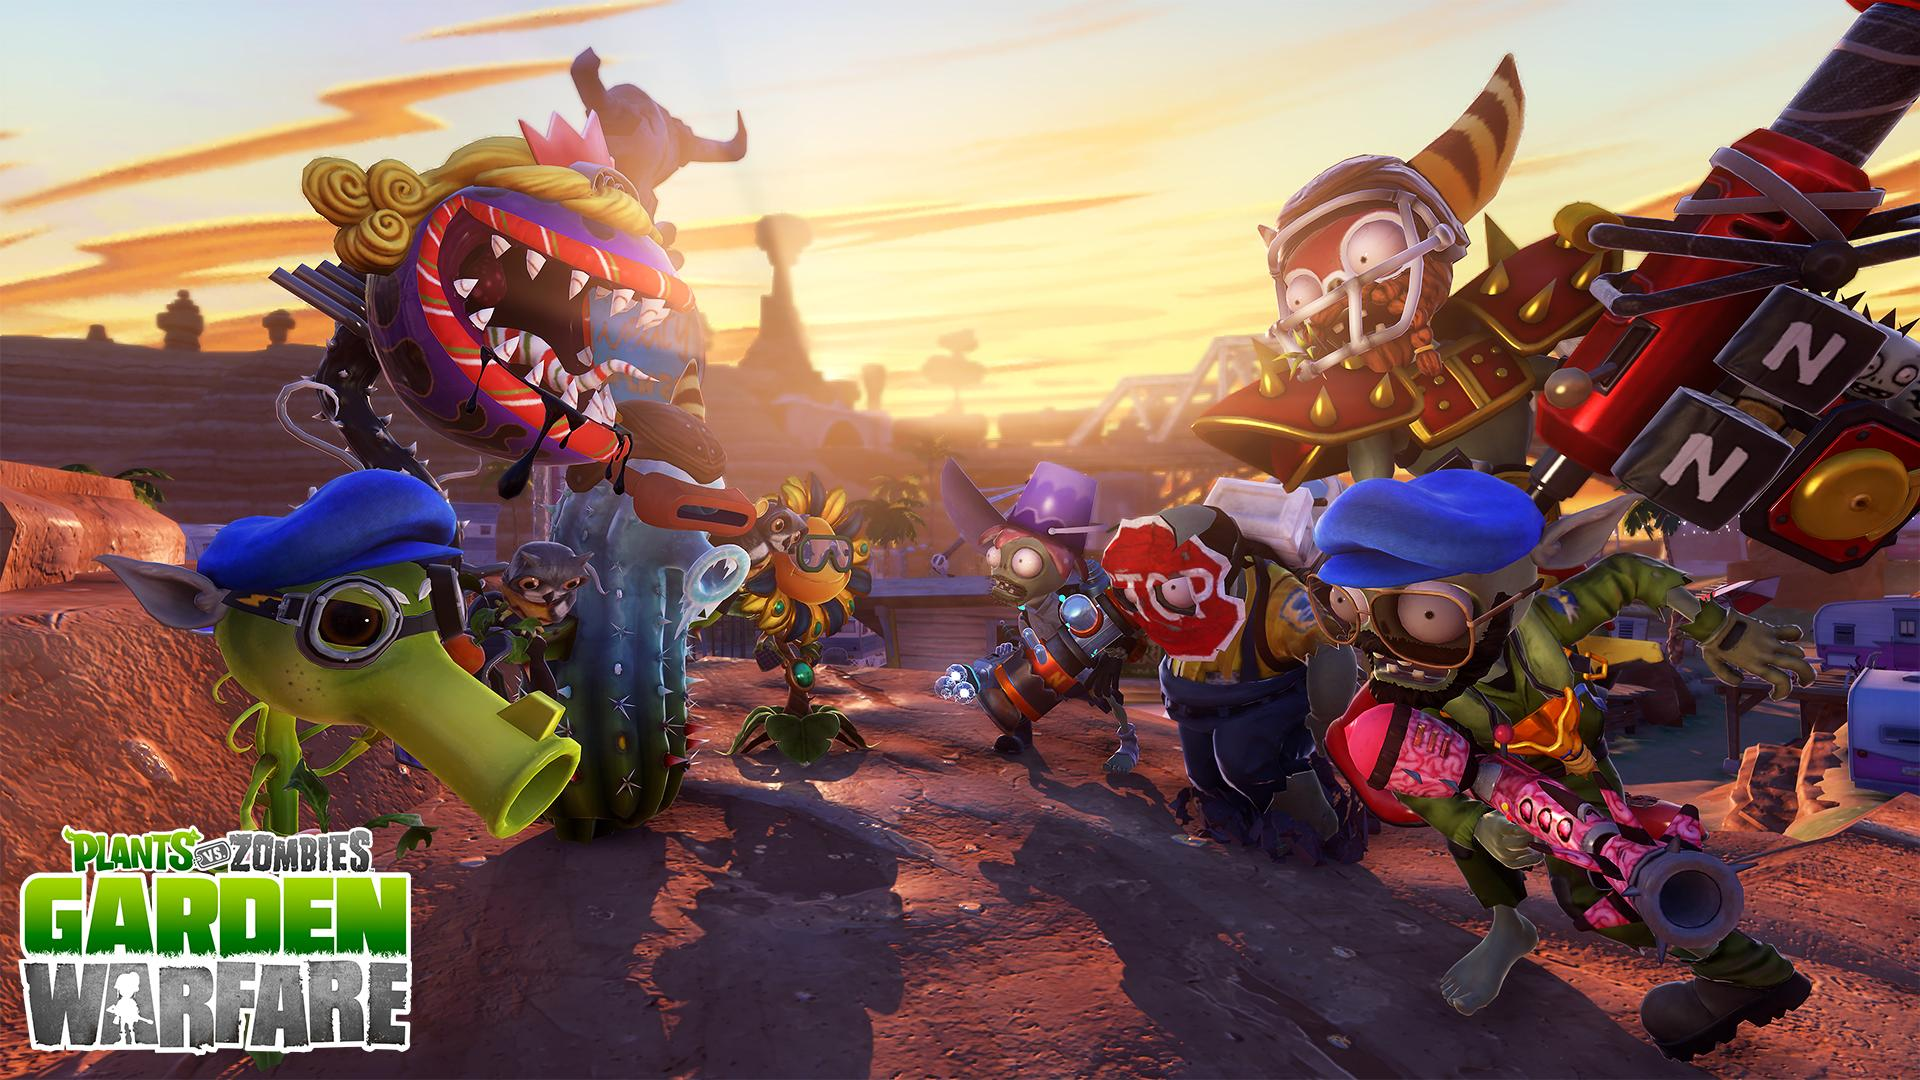 Plants vs zombies garden warfare comes to playstation in august digital trends for Plants vs zombies garden warfare 1